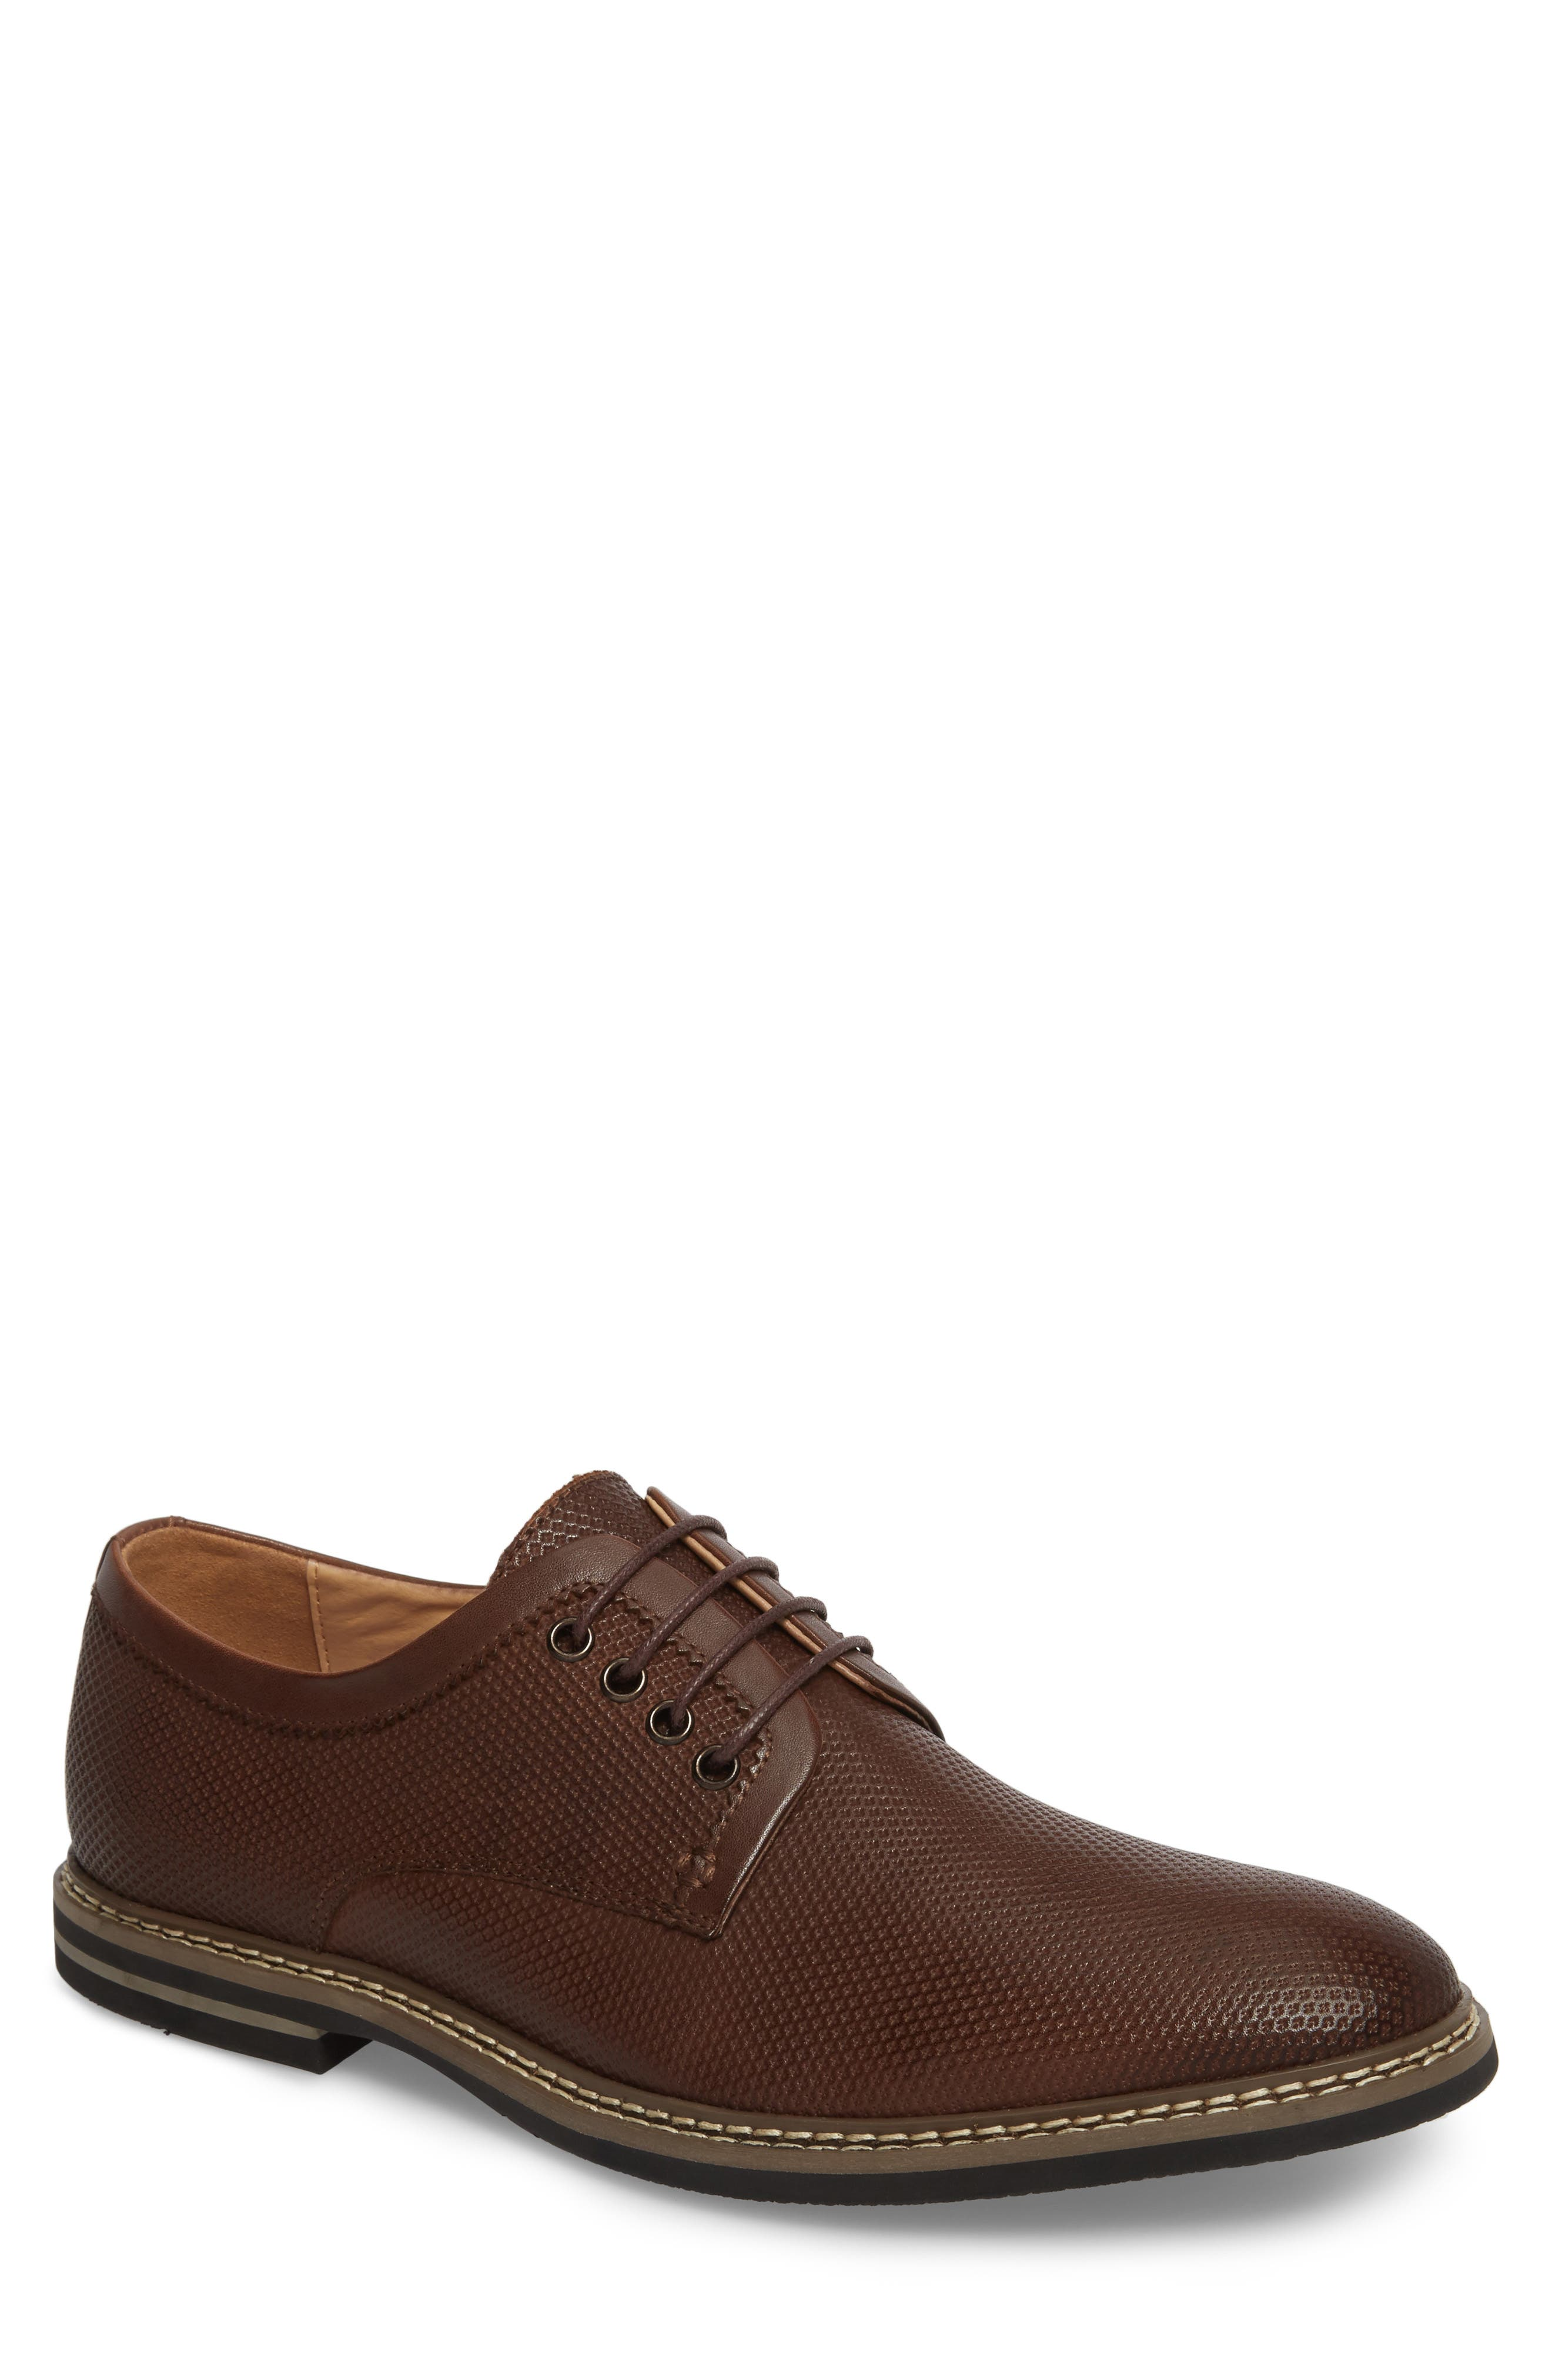 Canning Plain Toe Derby,                         Main,                         color, Brown Leather